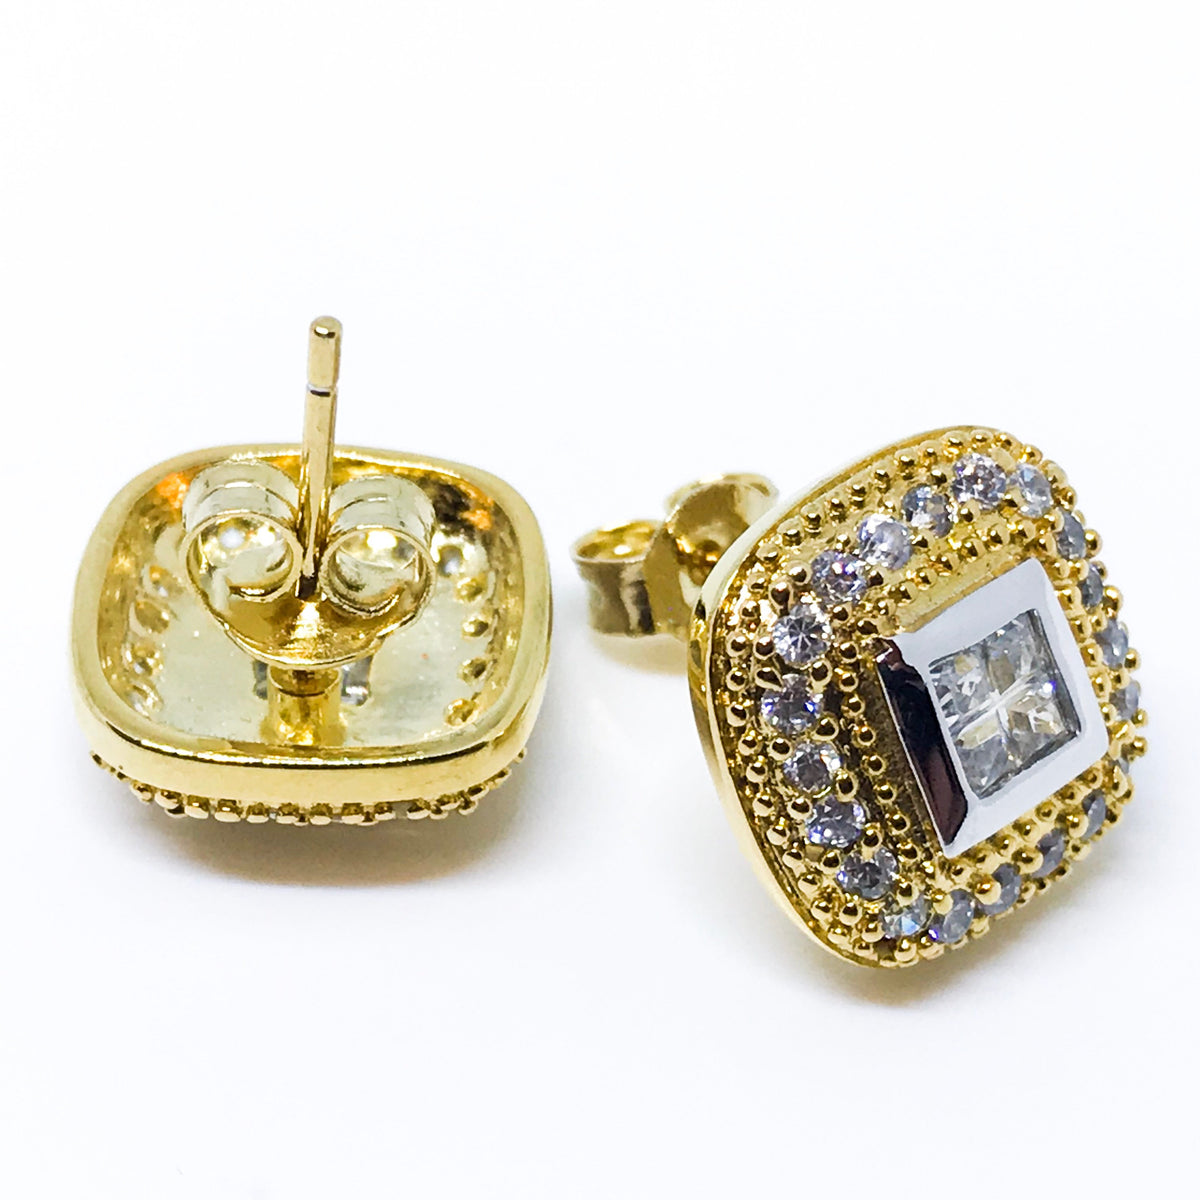 18K Yellow Gold on Sterling Silver Earrings - 3 Royal Dazzy